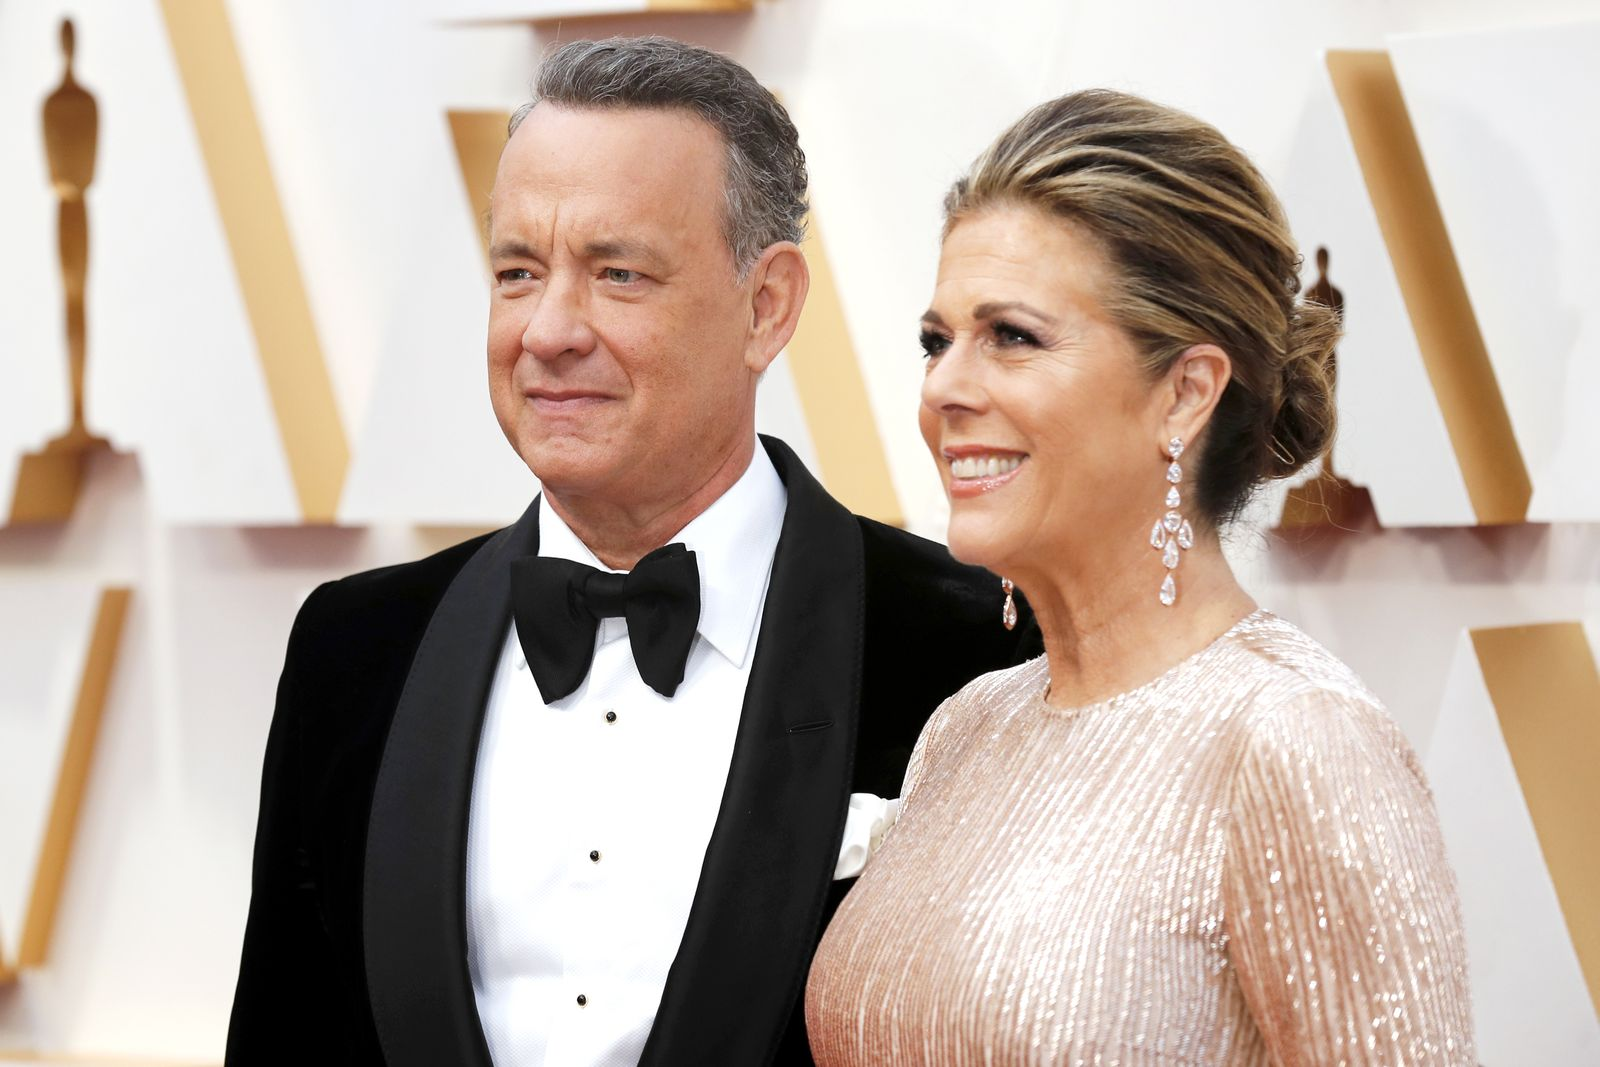 Tom Hanks and wife Rita wilson tested positive for coronavirus, Hollywood, USA - 09 Feb 2020